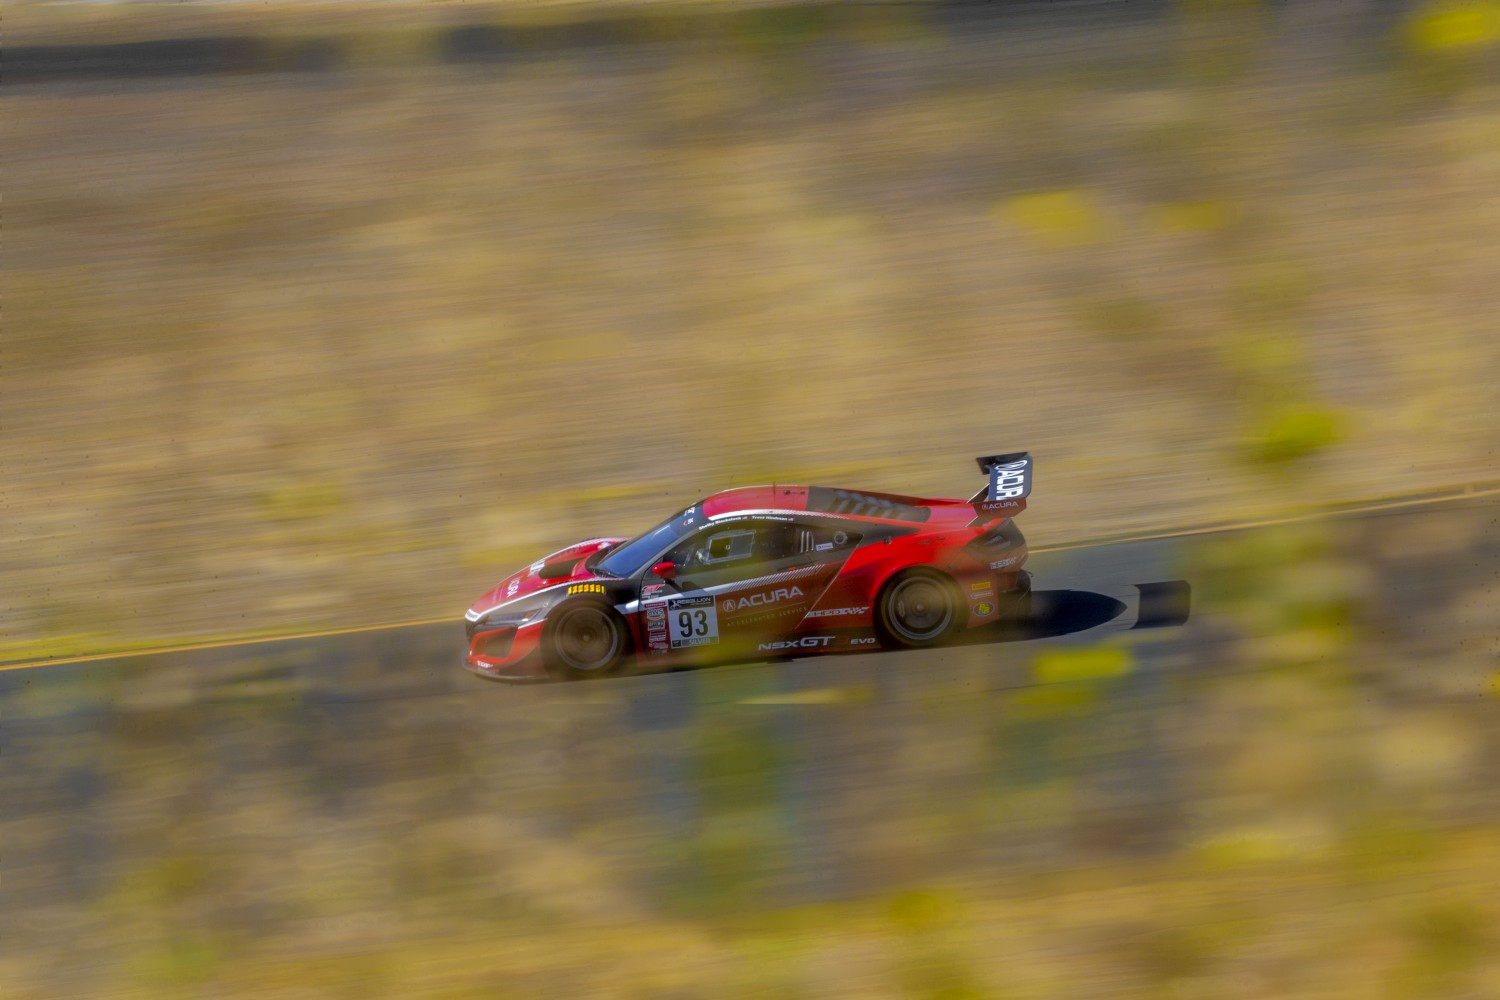 #93 Acura NSX GT3 of Shelby Blackstock and Trent Hindman, Racers Edge Motorsports, GT3 Pro-Am, SRO America, Sonoma Raceway, Sonoma CA, Aug 2020.